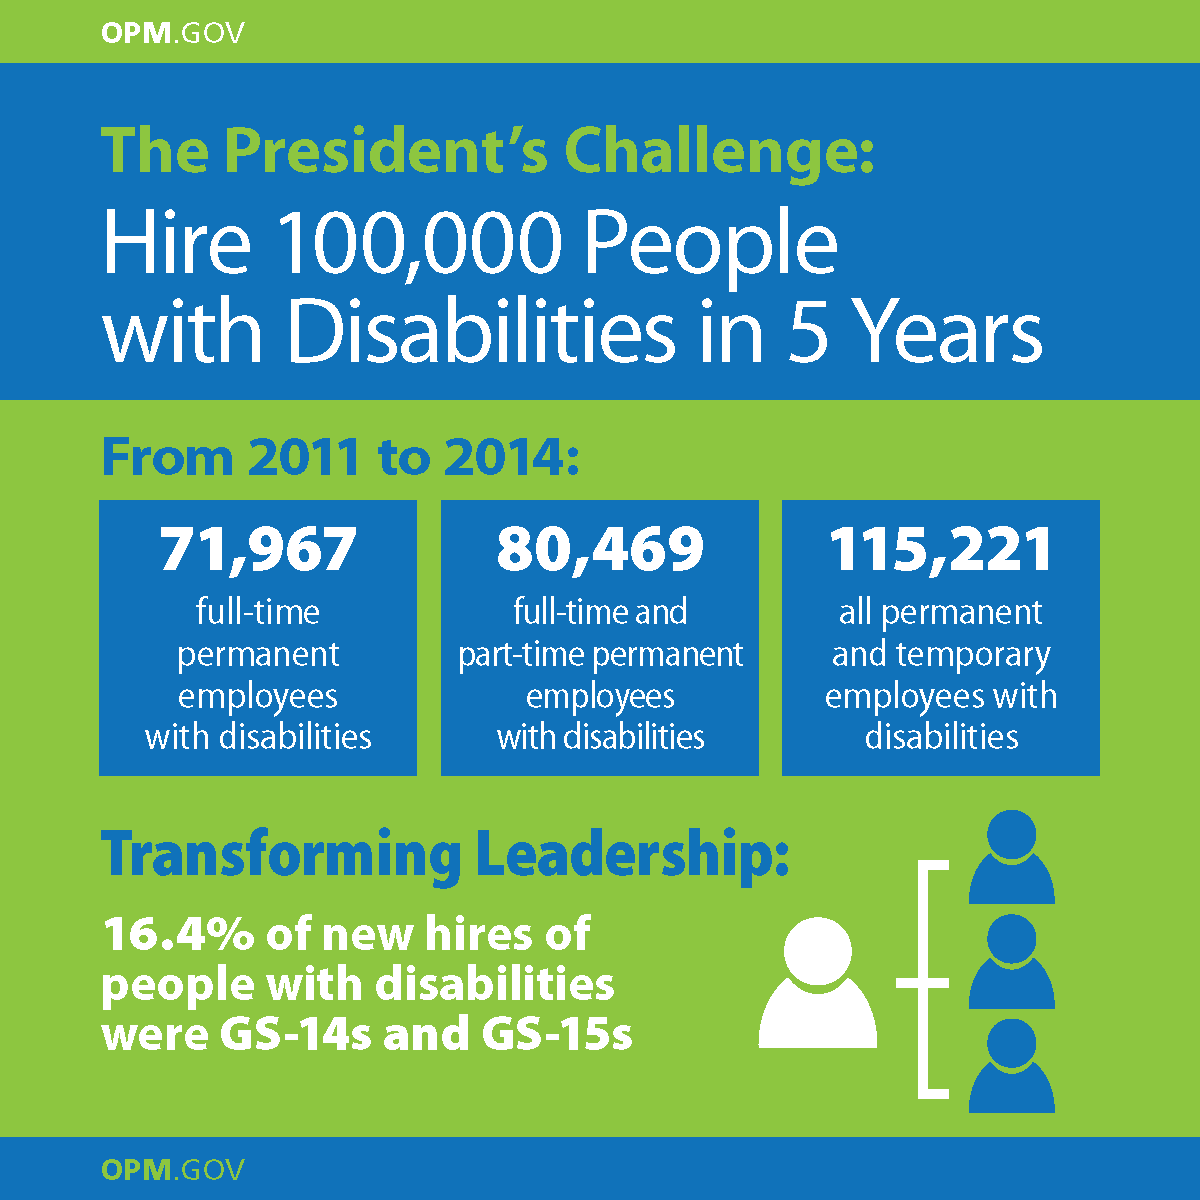 Header:  OPM.GOV  Graphic with a green and blue background. Graphic is located at the lowest right corner of the image with  4 avatars, 3 blue ones connected to one big white avatar by a timeline. Headline: The President's Challenge, Hire 100,000 People with Disabilities in 5 years. Subhead: From 2011 to 2014, (followed by 3 separate boxes containing the following) 71,967, full-time permanent employees with disabilities. 80,469, full-time and part-time permanent employees with disabilities. 115,221m all permanent and temporary employees with disabilities. Subhead: Transforming Leadership, 16.4% of new hires of people with disabilities were GS-14s and GS-15s. Footer: OPM.GOV